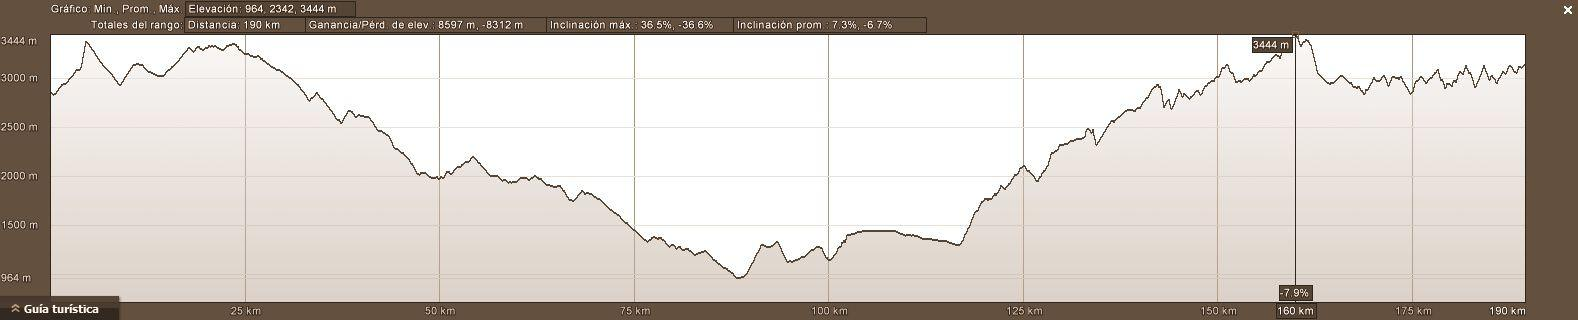 Elevation profile offroad ecuador excursion dirt bike 4x4 self guided adventure tour